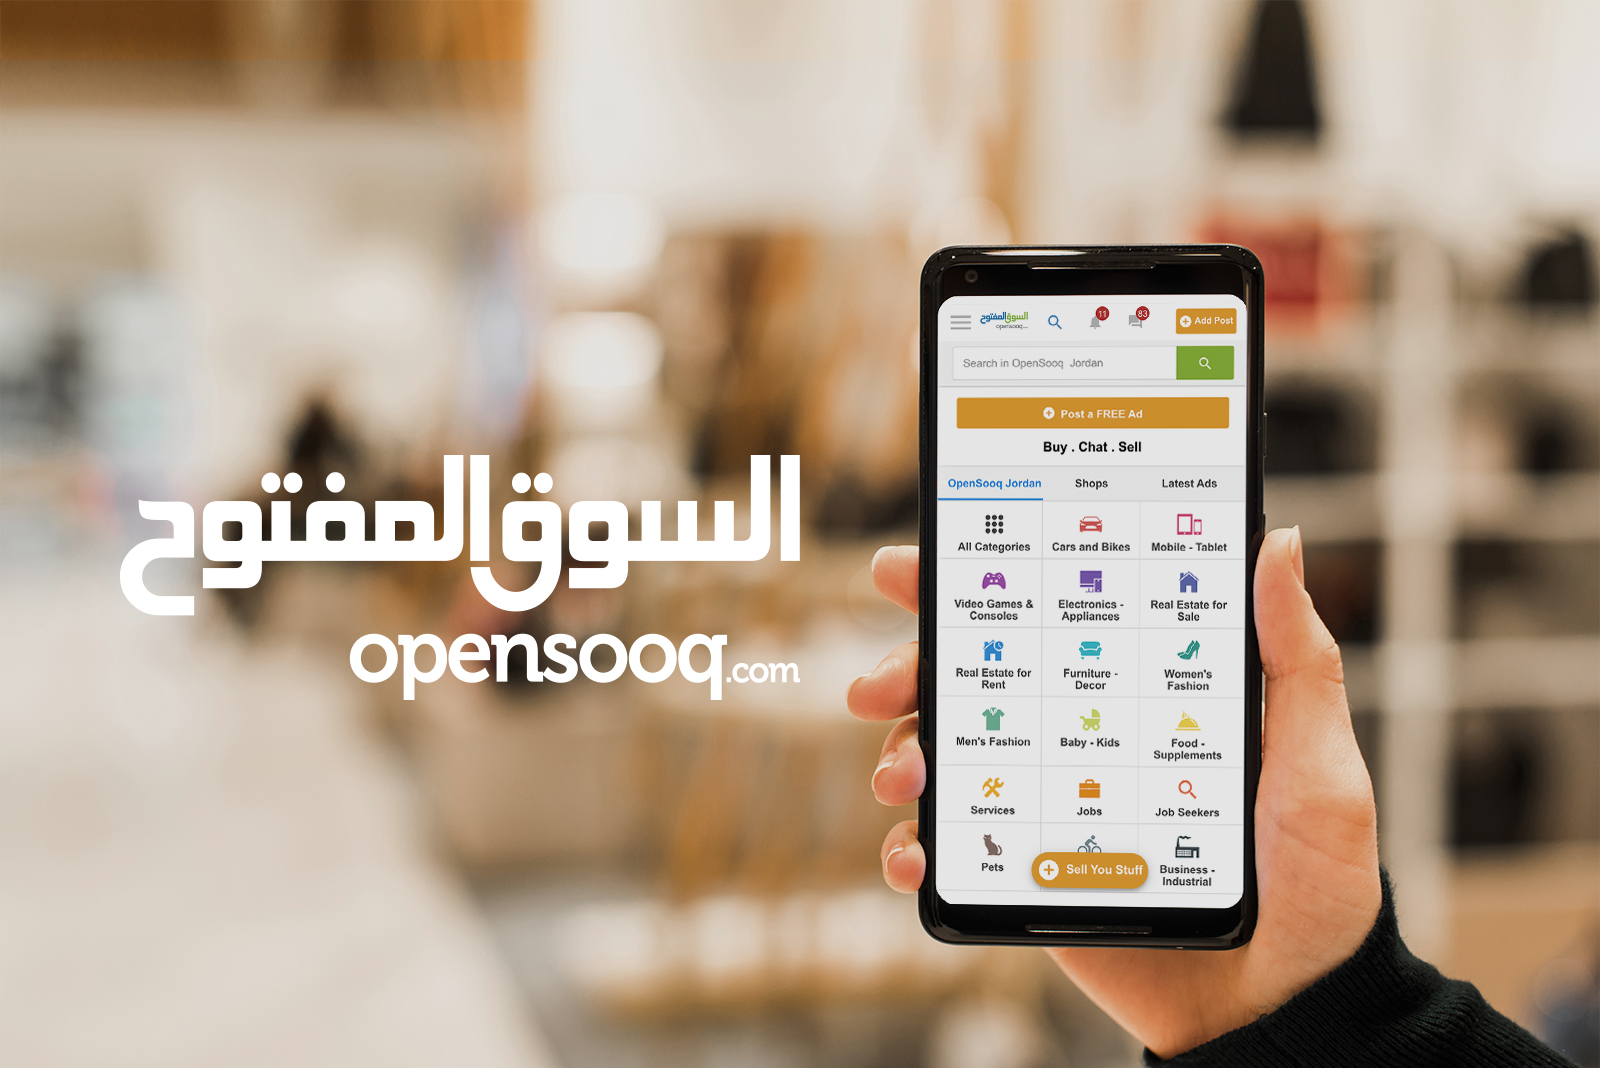 The OpenSooq logo next to a smartphone displaying the OpenSooq website.